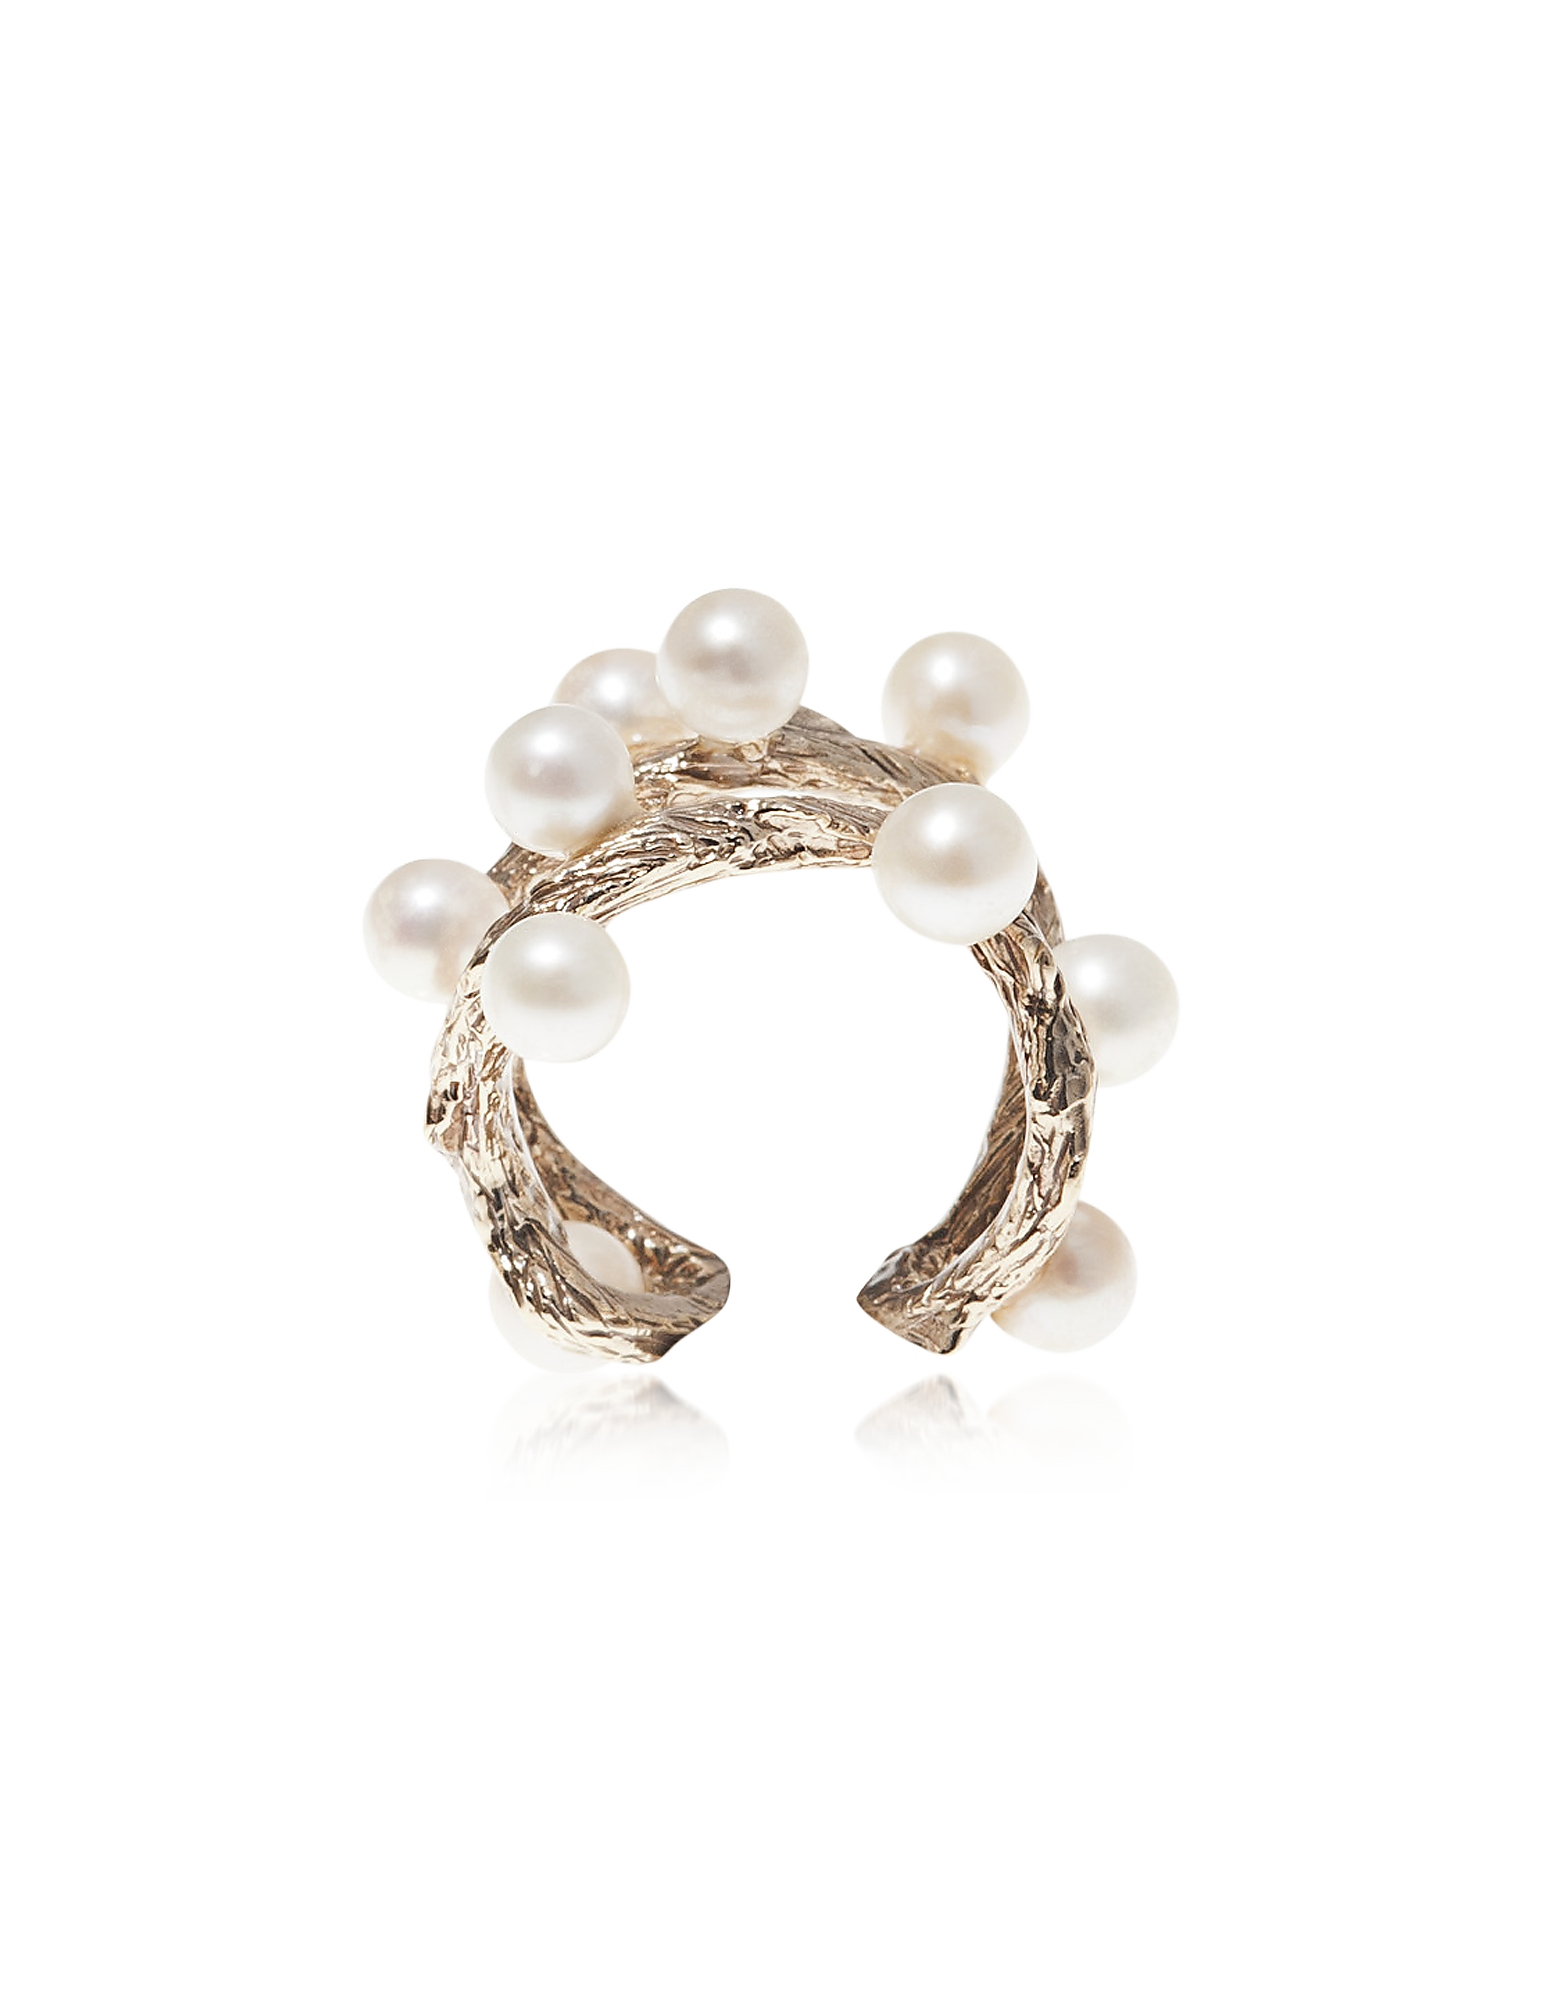 Thorny Branch Silver Ring w/ Pearls